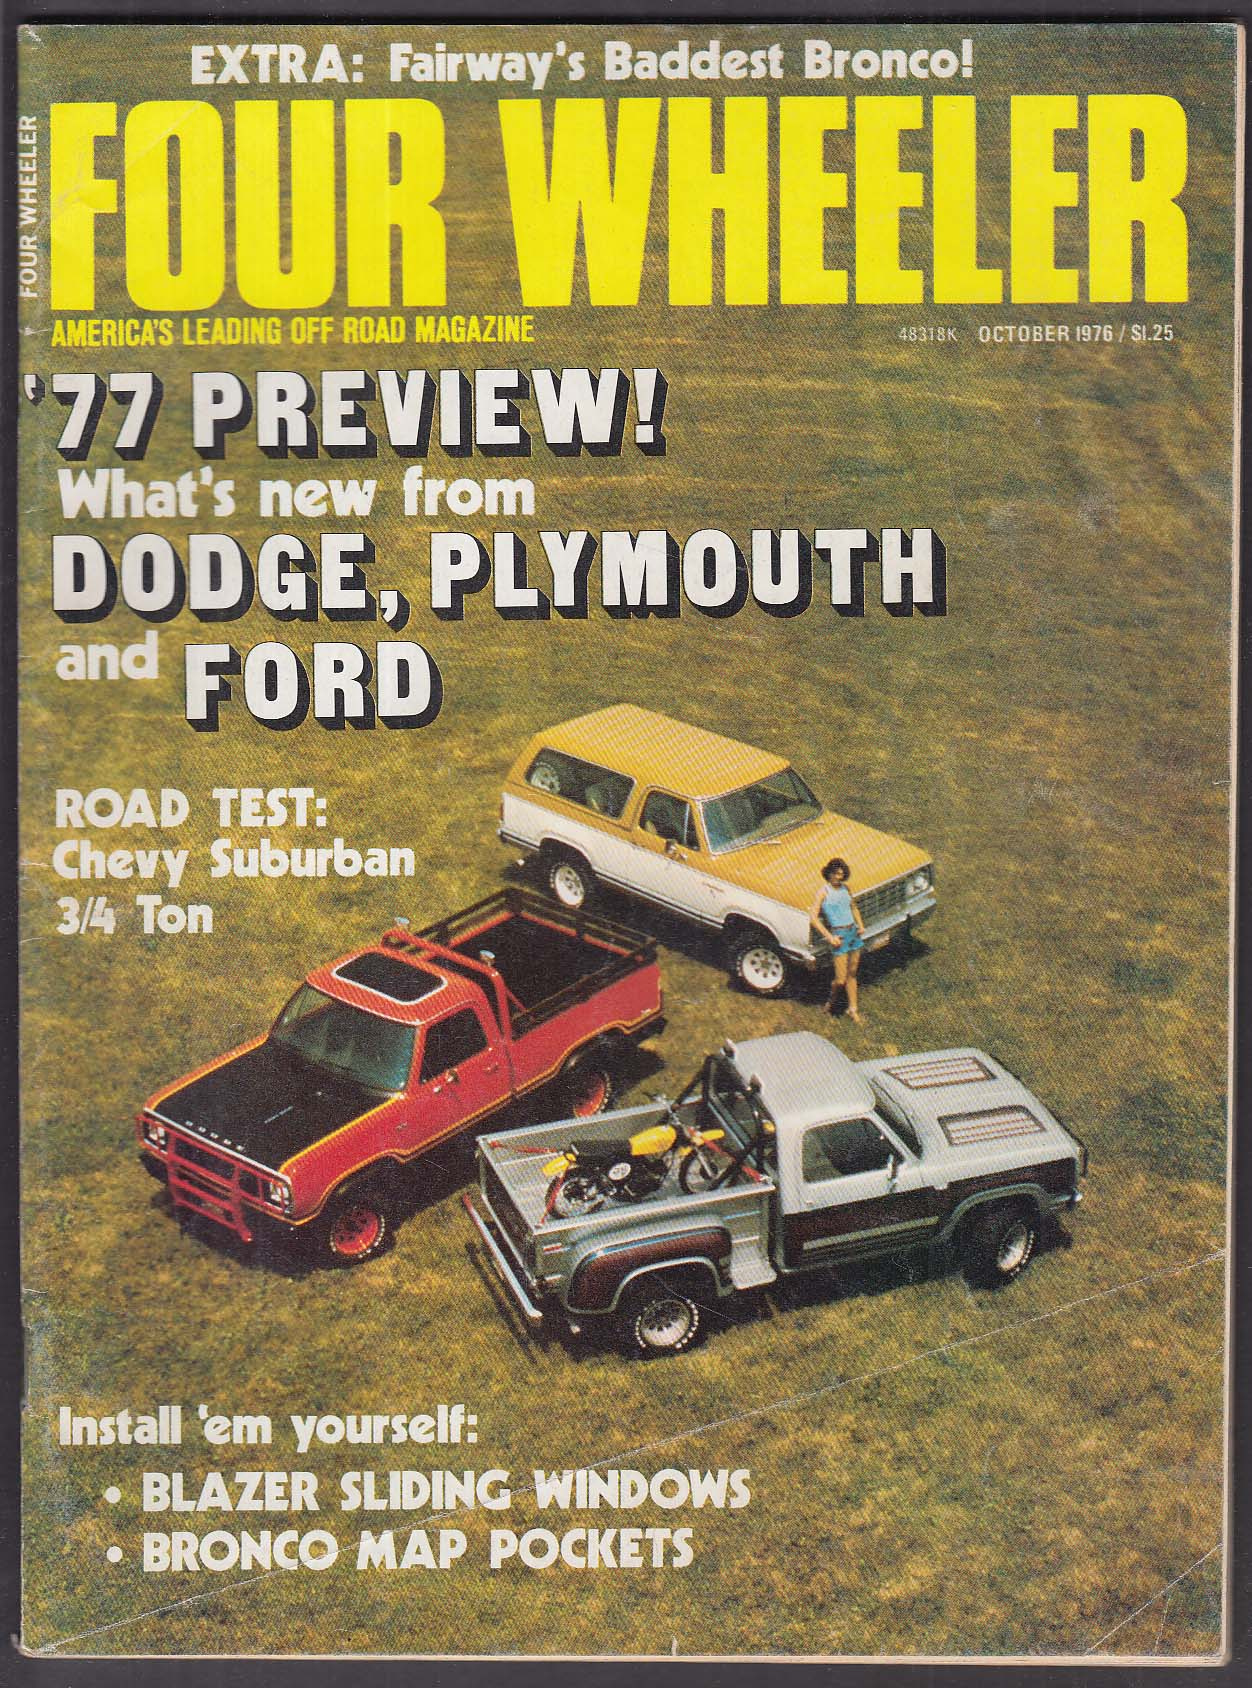 FOUR WHEELER Chevy Suburban road test Blazer Bronco + 10 1976